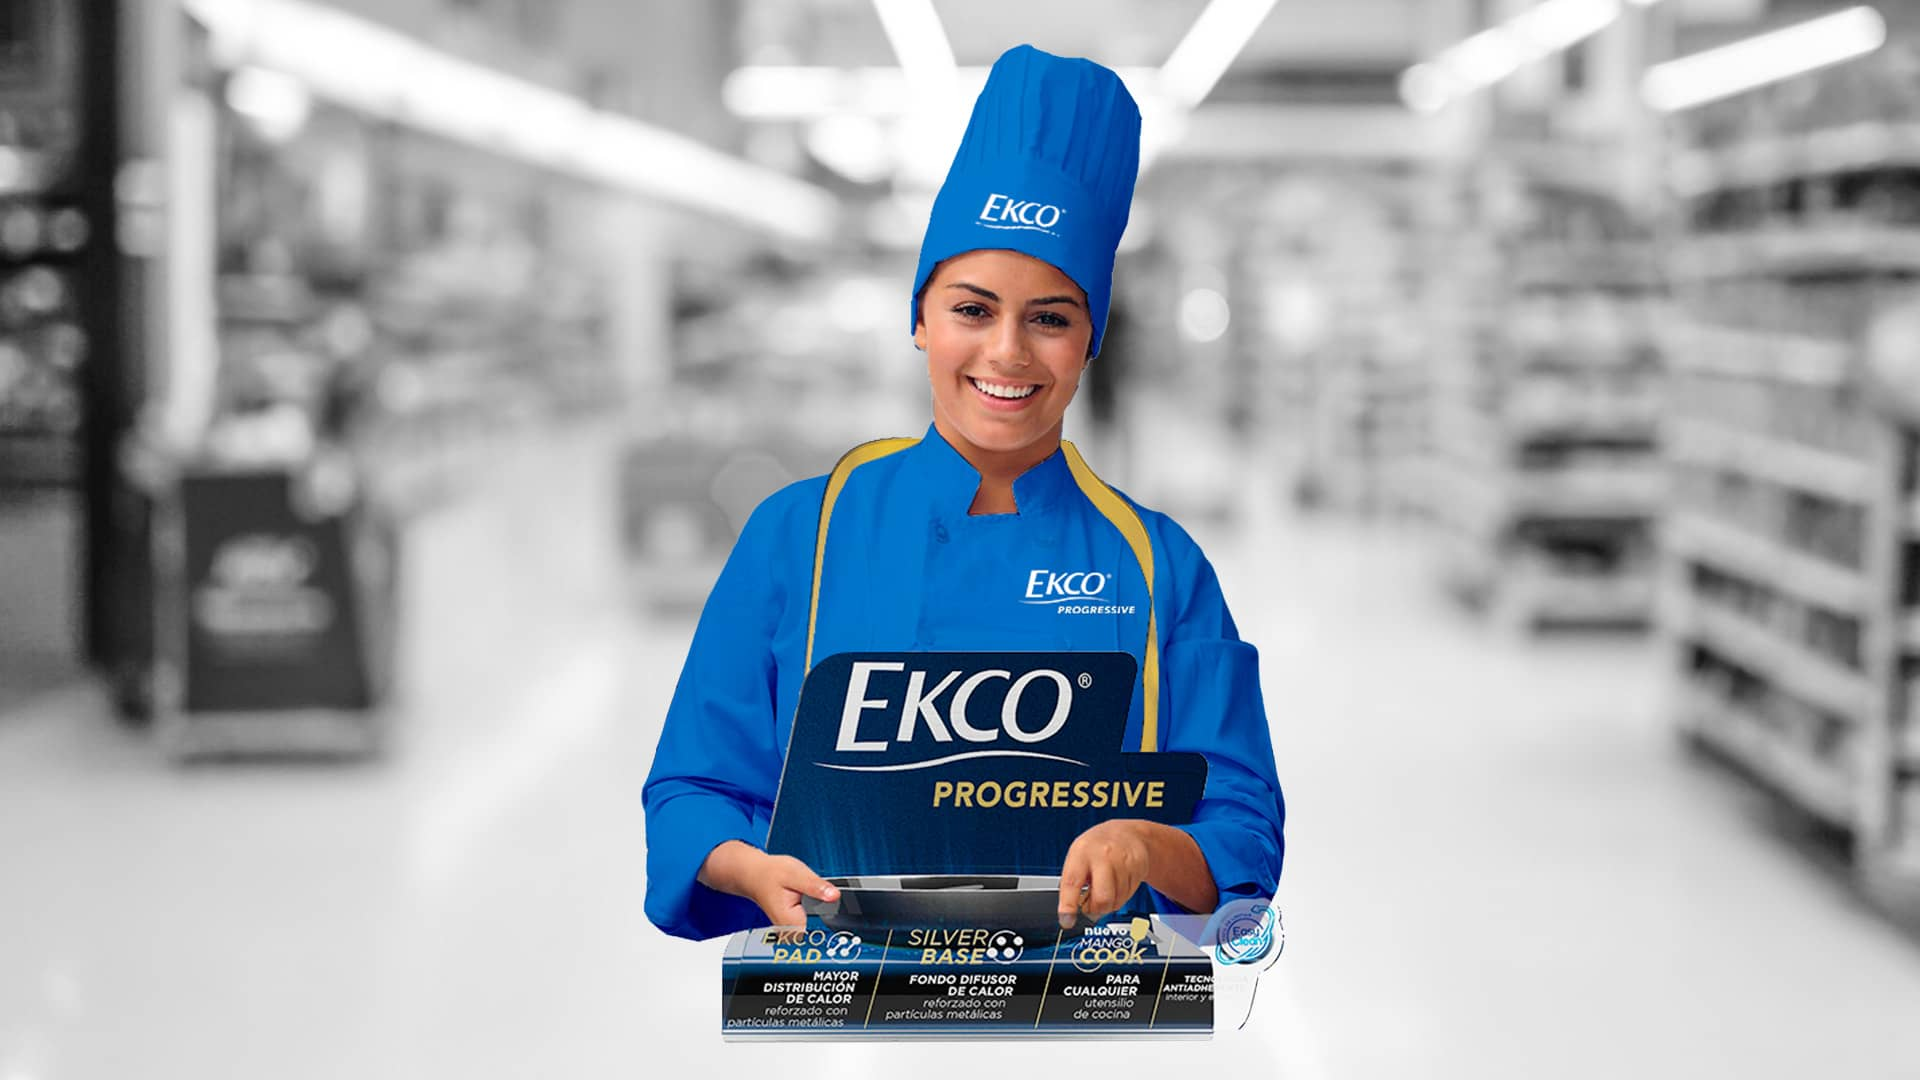 EKCO Progressive Ganem Group